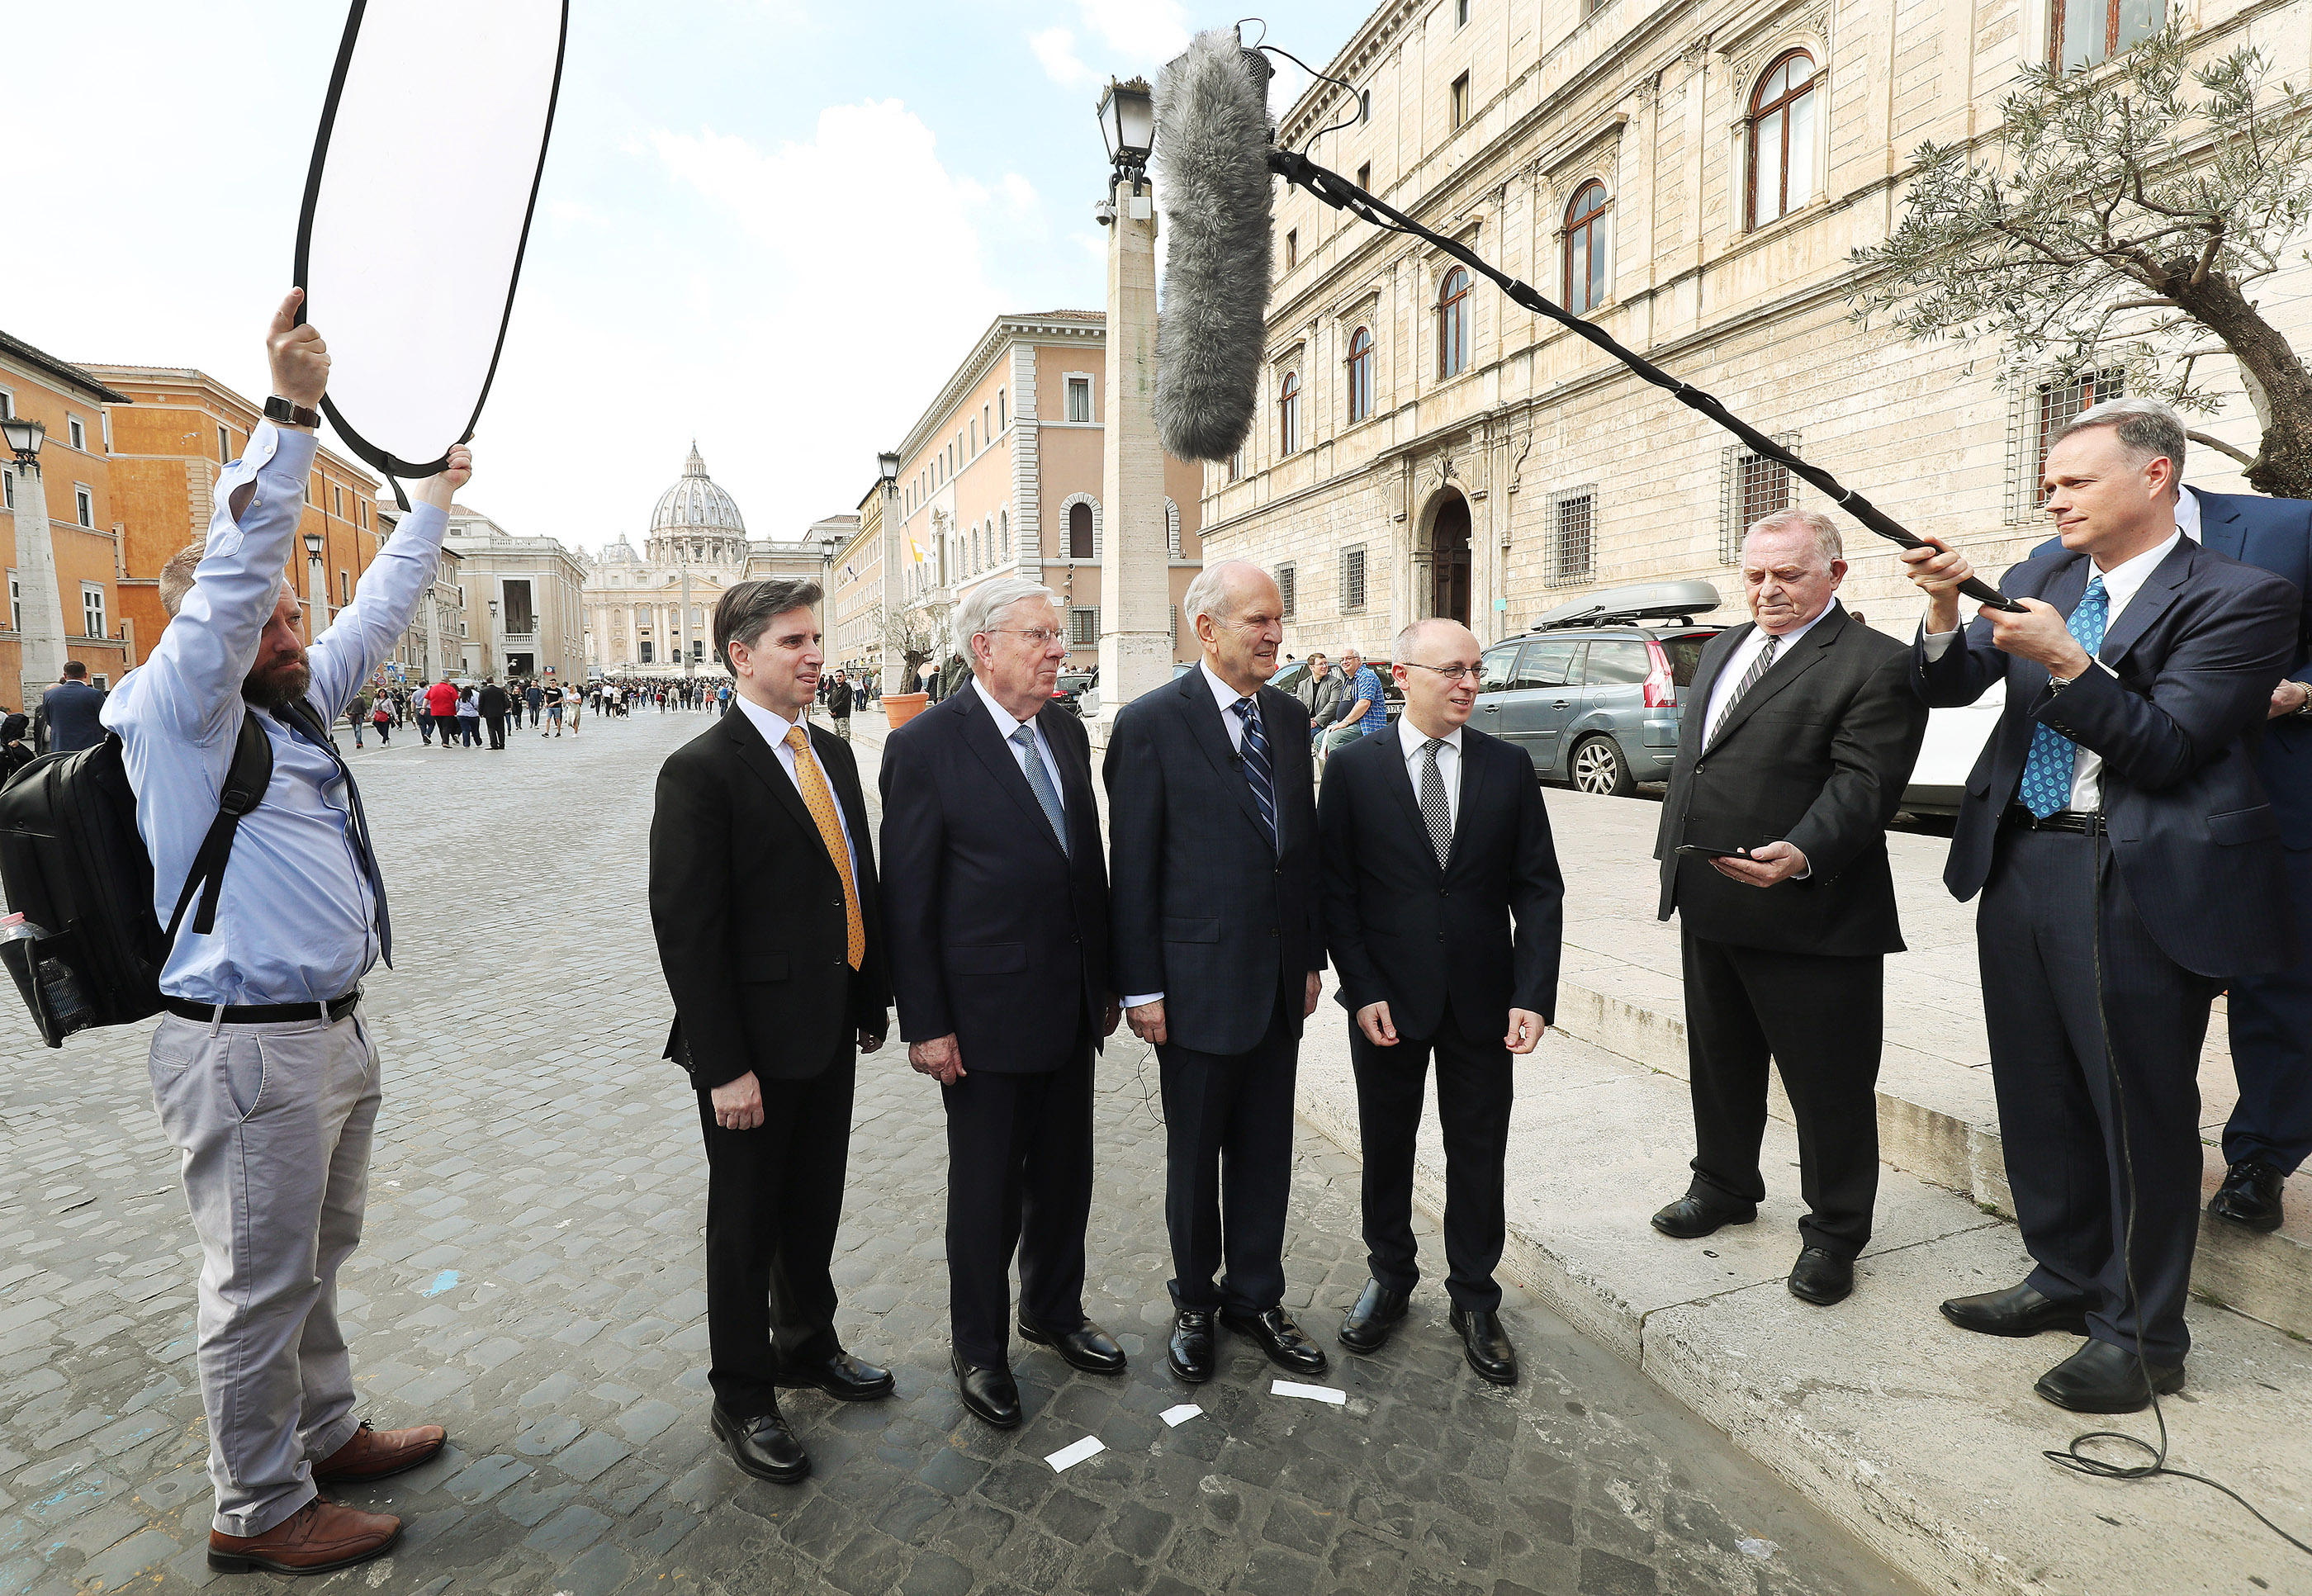 President Russell M. Nelson of The Church of Jesus Christ of Latter-day Saints; President M. Russell Ballard, acting president of the Quorum of the Twelve Apostles; Elder Massimo De Feo, General Authority Seventy, left; and Elder Alessandro Dini Ciacci, Area Seventy, right, are interviewed by media near the Vatican in Rome, Italy, on Saturday, March 9, 2019, after meeting with Pope Francis.